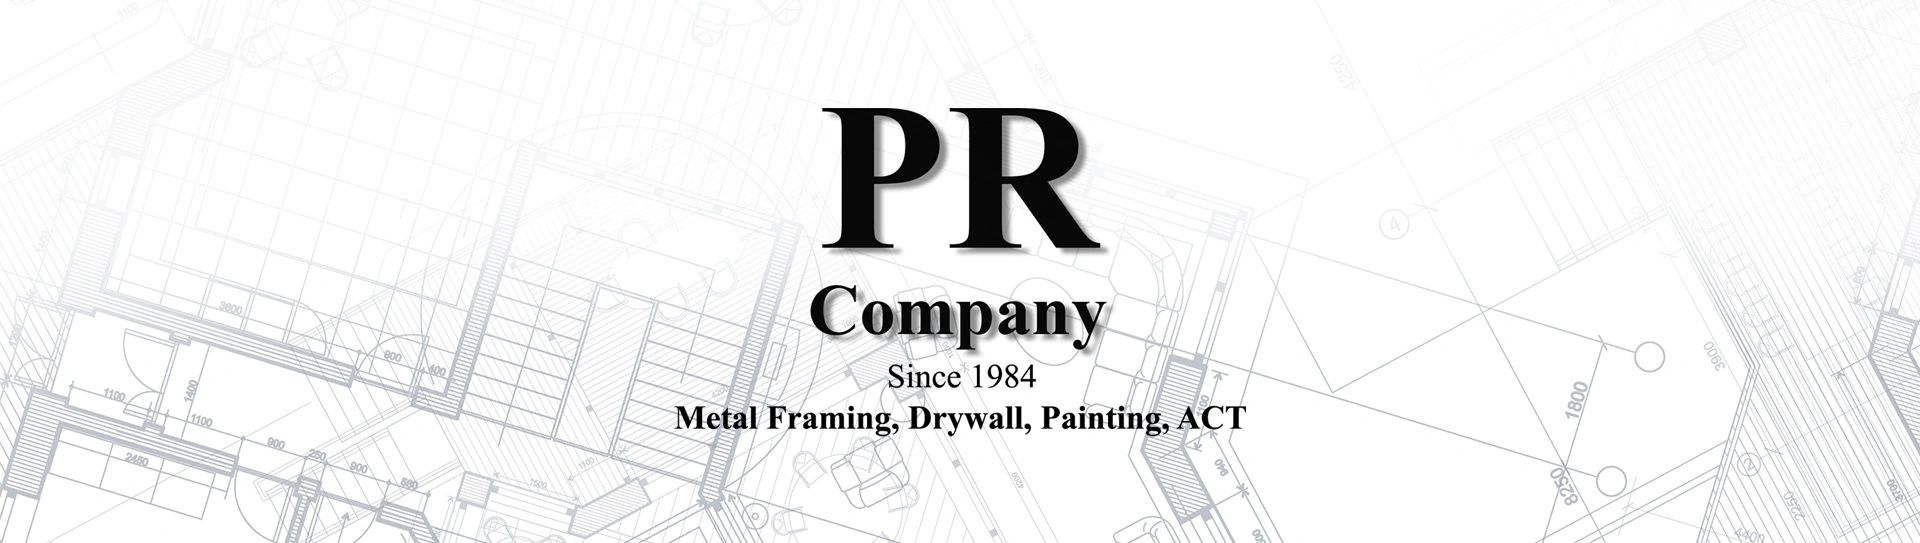 Previous Projects | P R Company